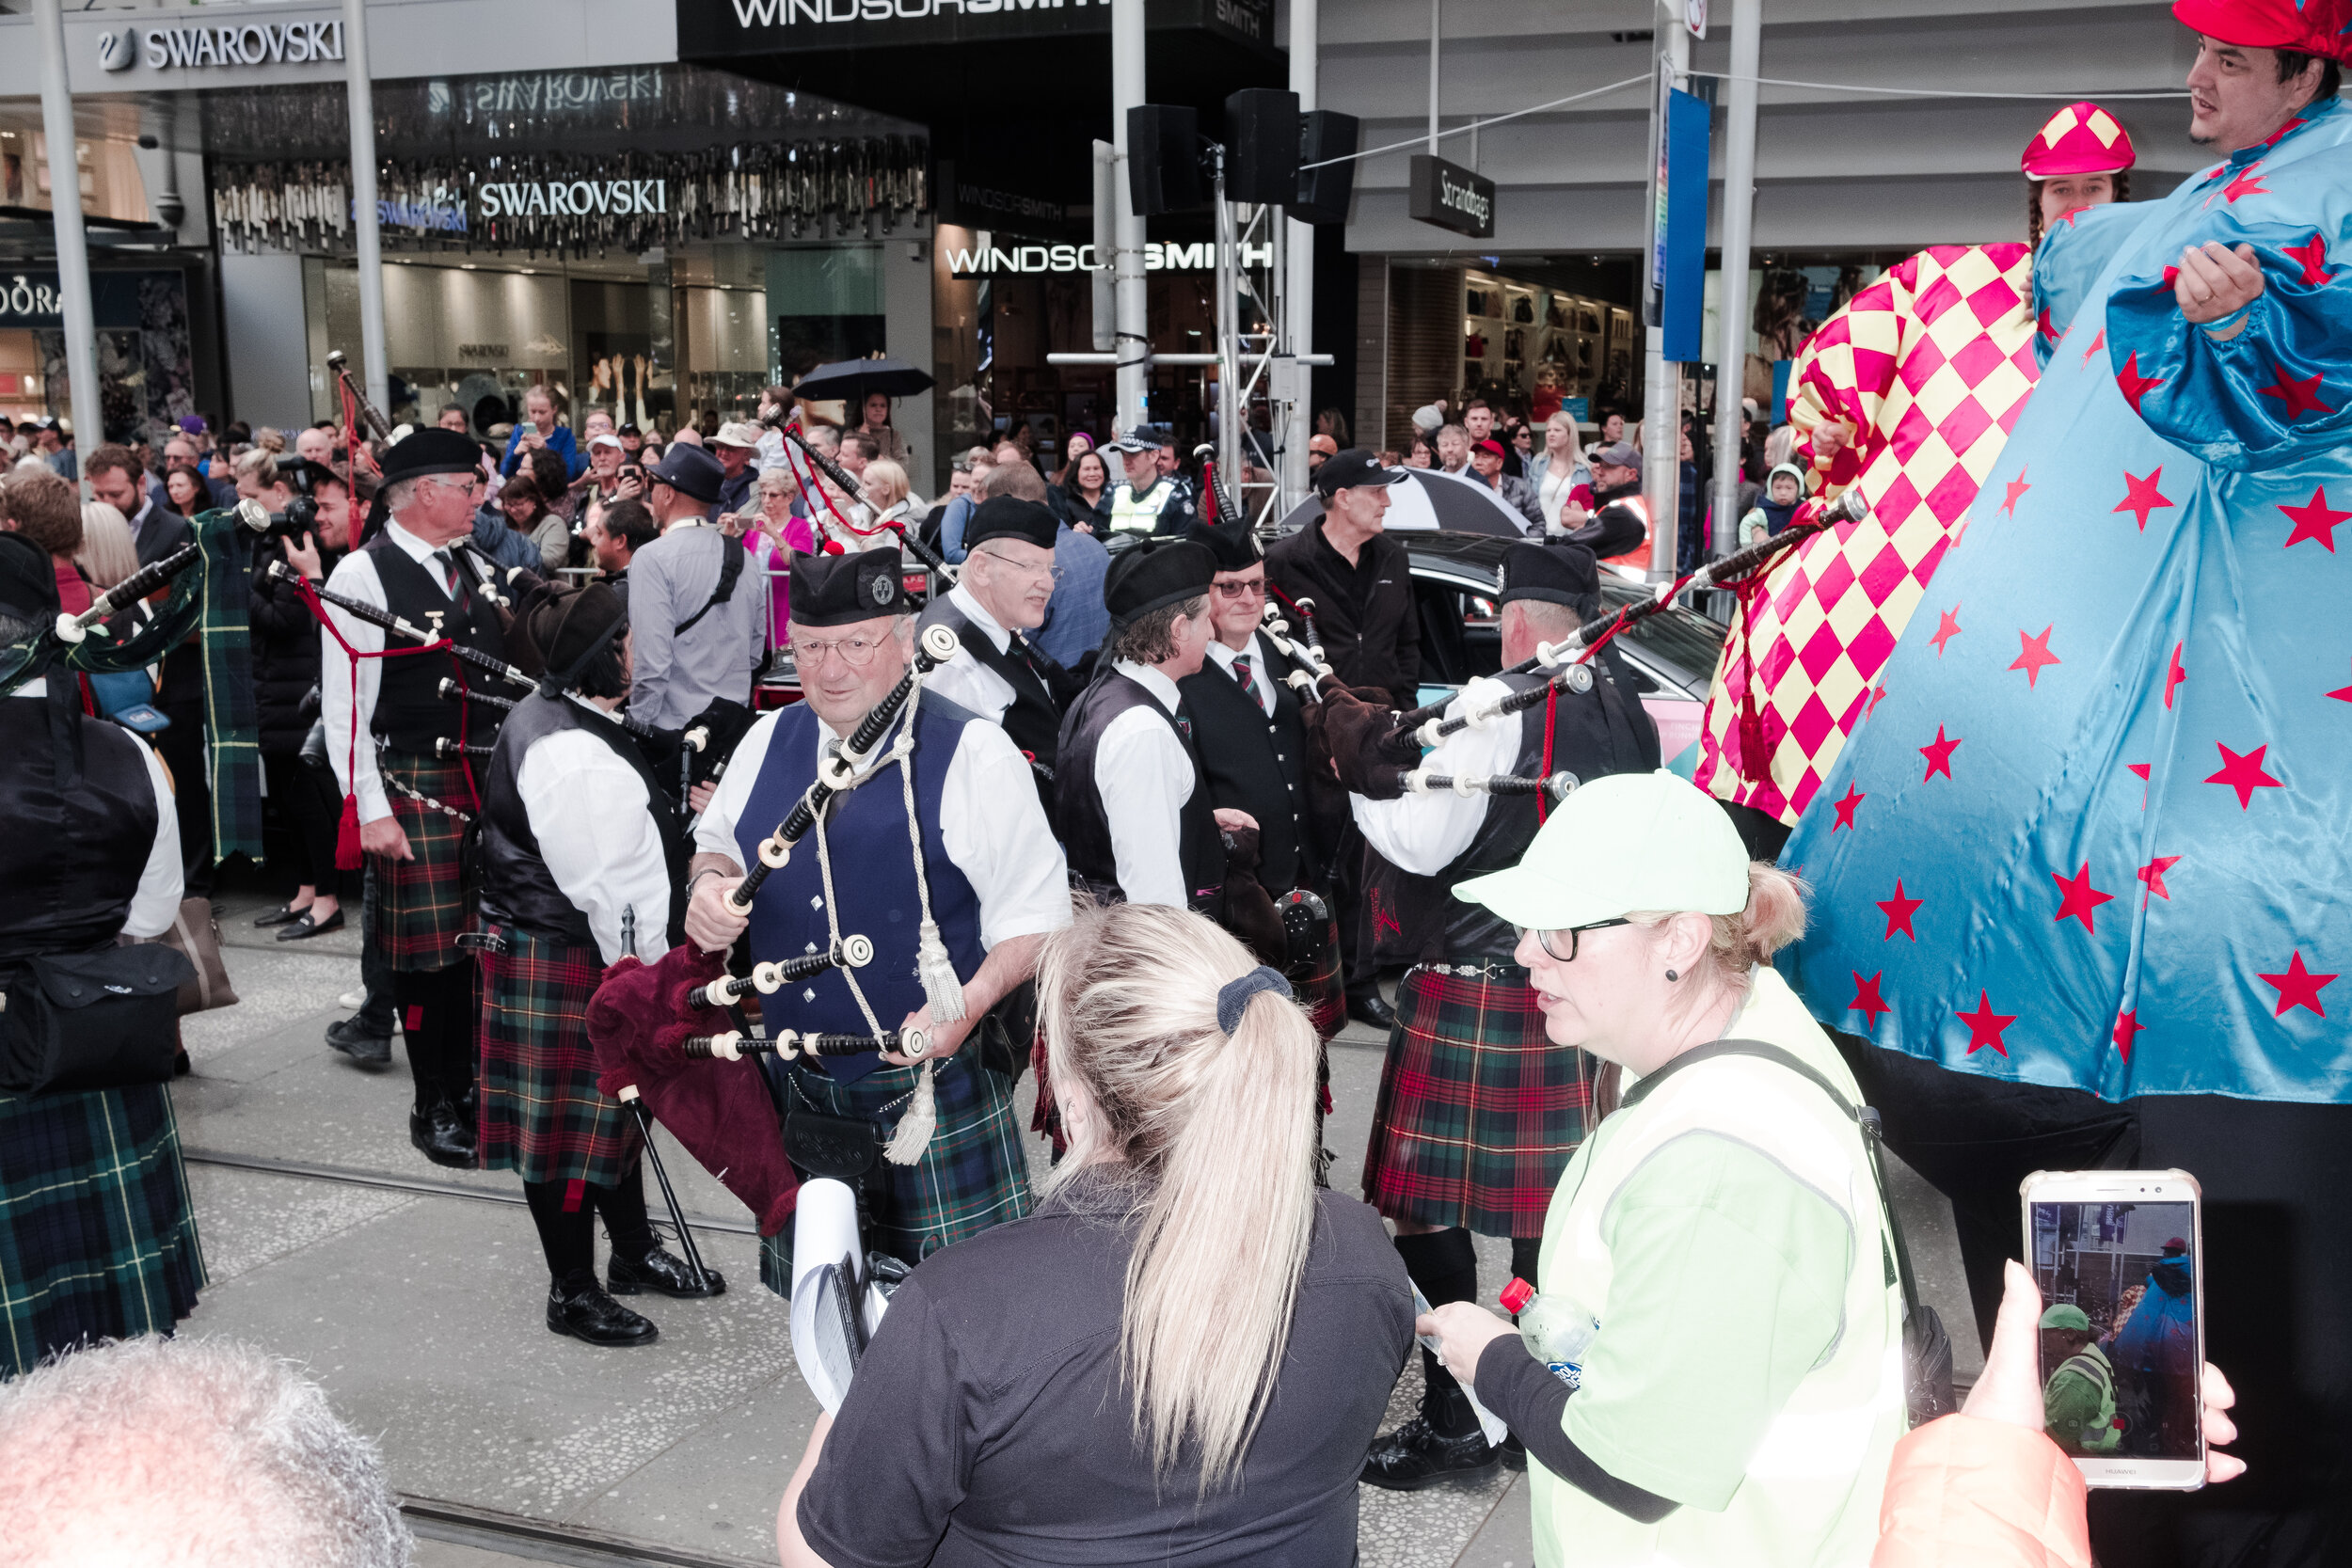 Performers prepare for the parade march. (Photo: Jeremy Gan)